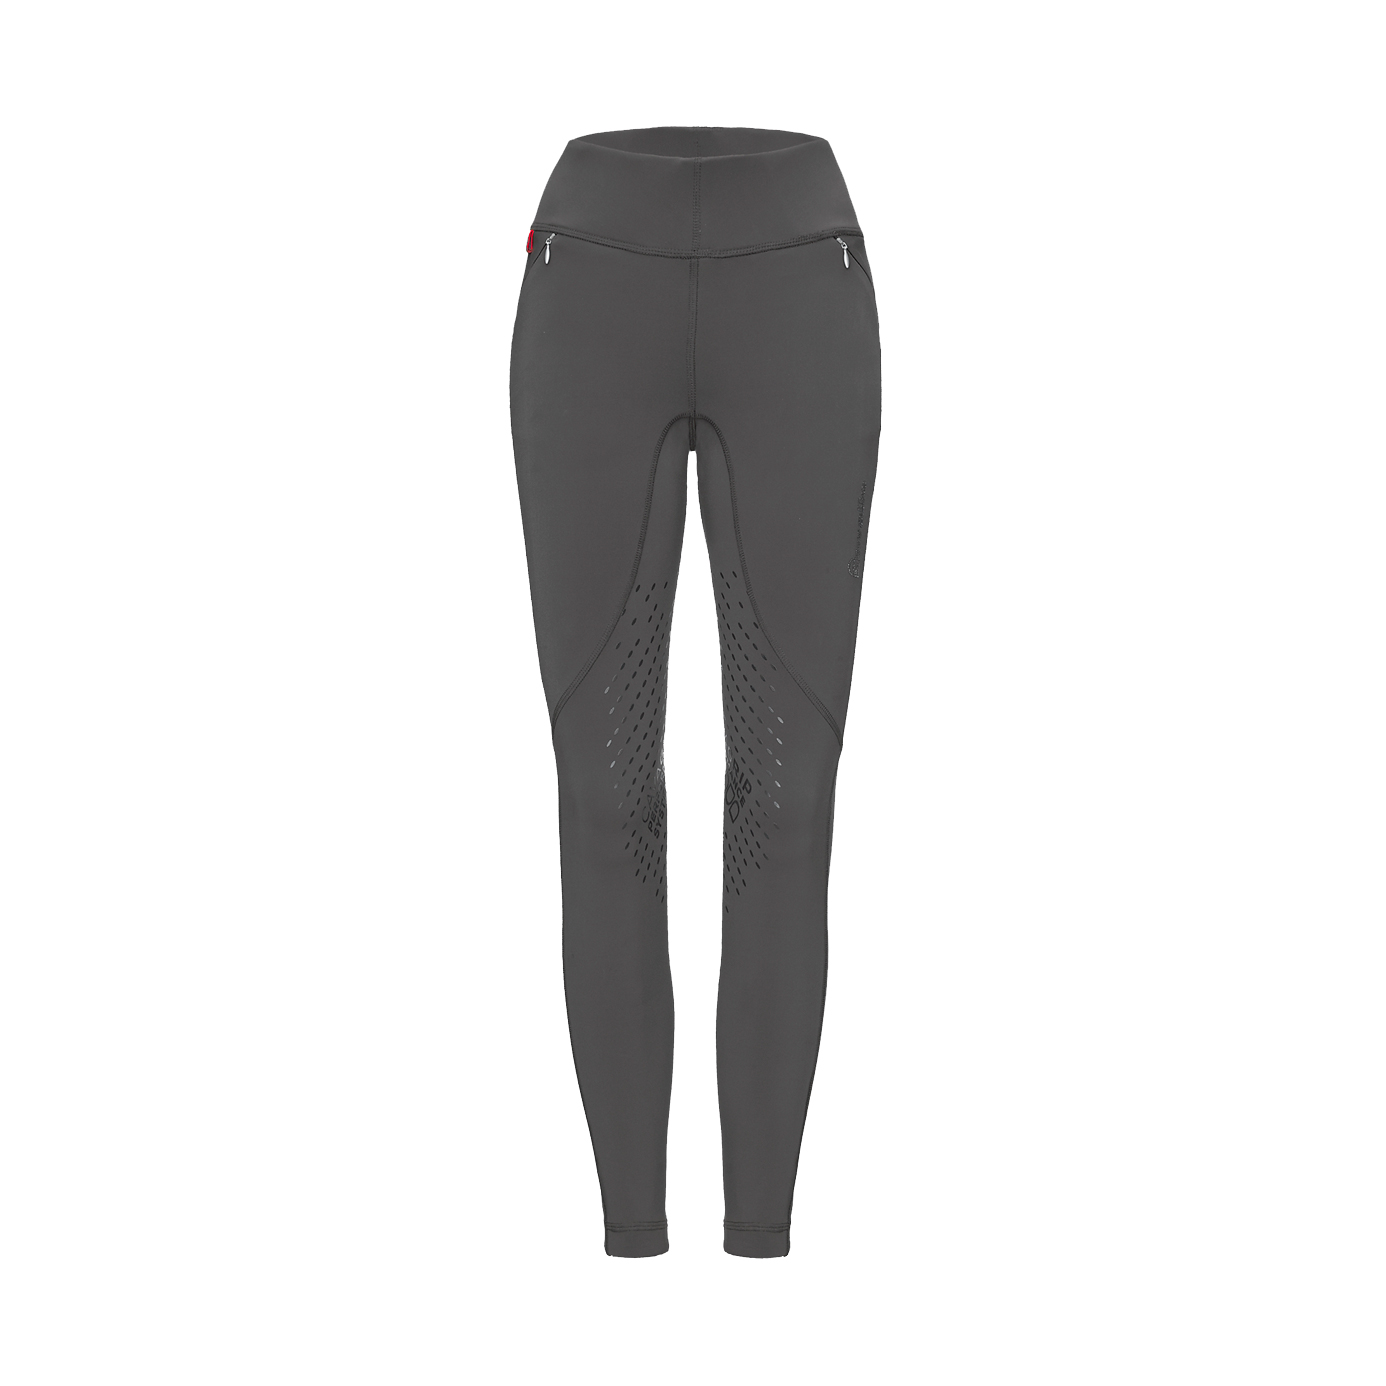 Cavallo Lis RL Grip Fossil Ladies Riding Leggings